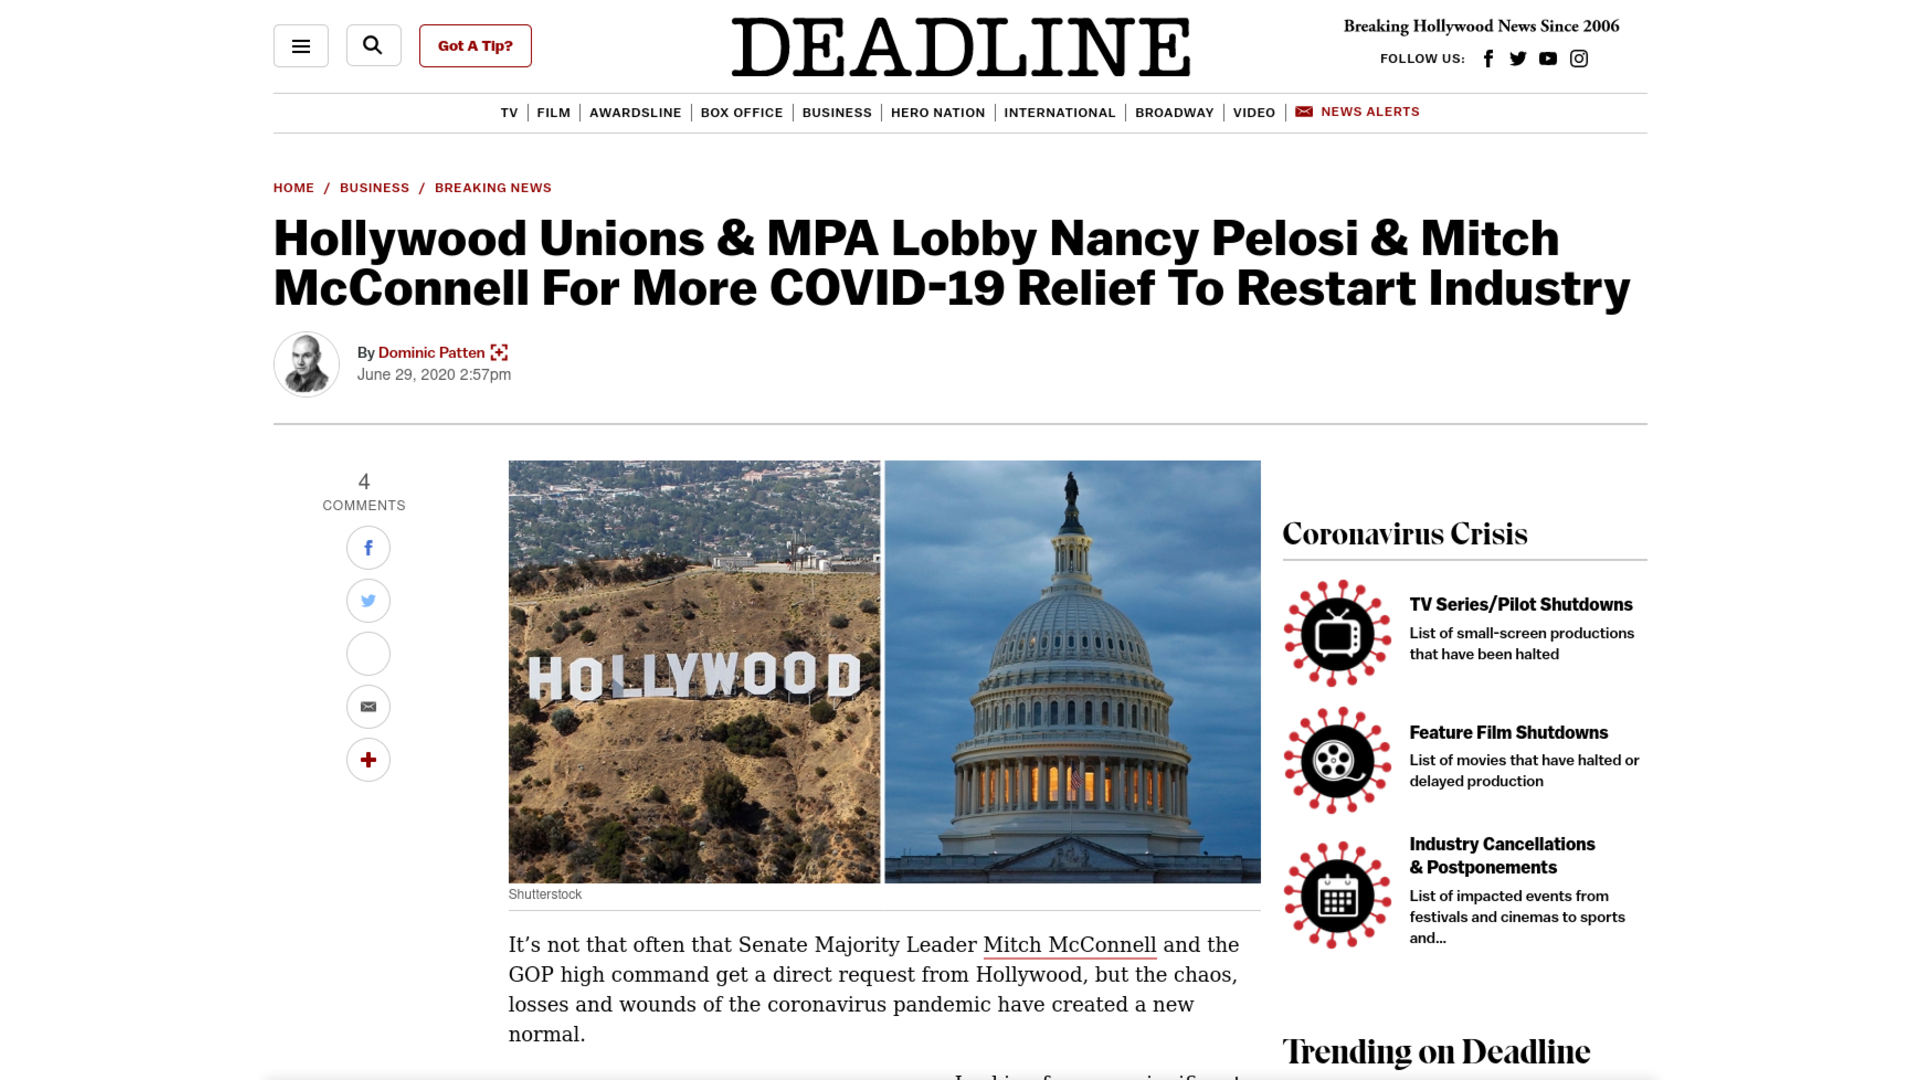 Fairness Rocks News Hollywood Unions & MPA Lobby Nancy Pelosi & Mitch McConnell For More COVID-19 Relief To Restart Industry